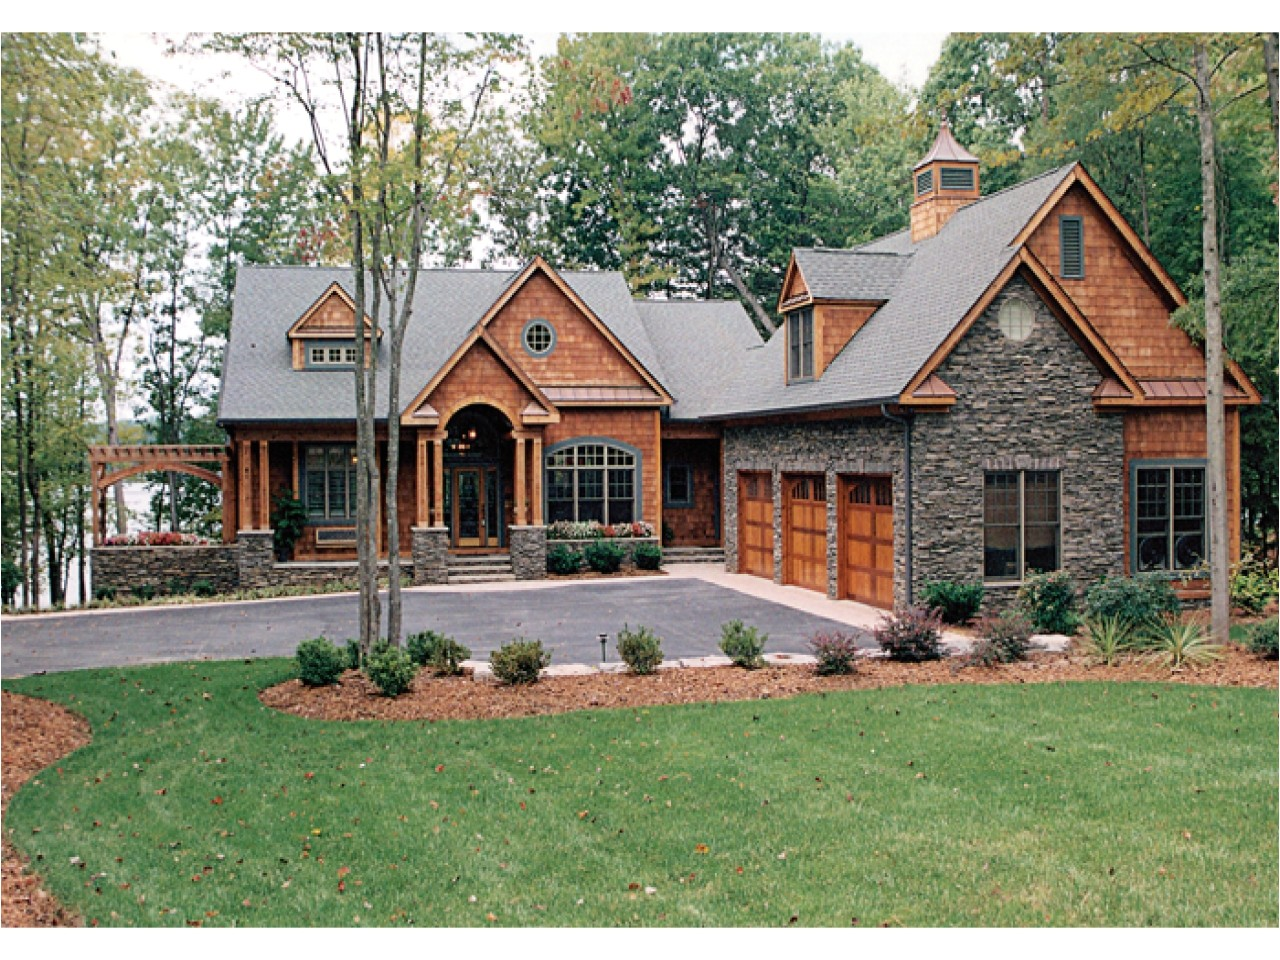 d72d67e10c2b7a6f craftsman house plans lake homes view plans lake house